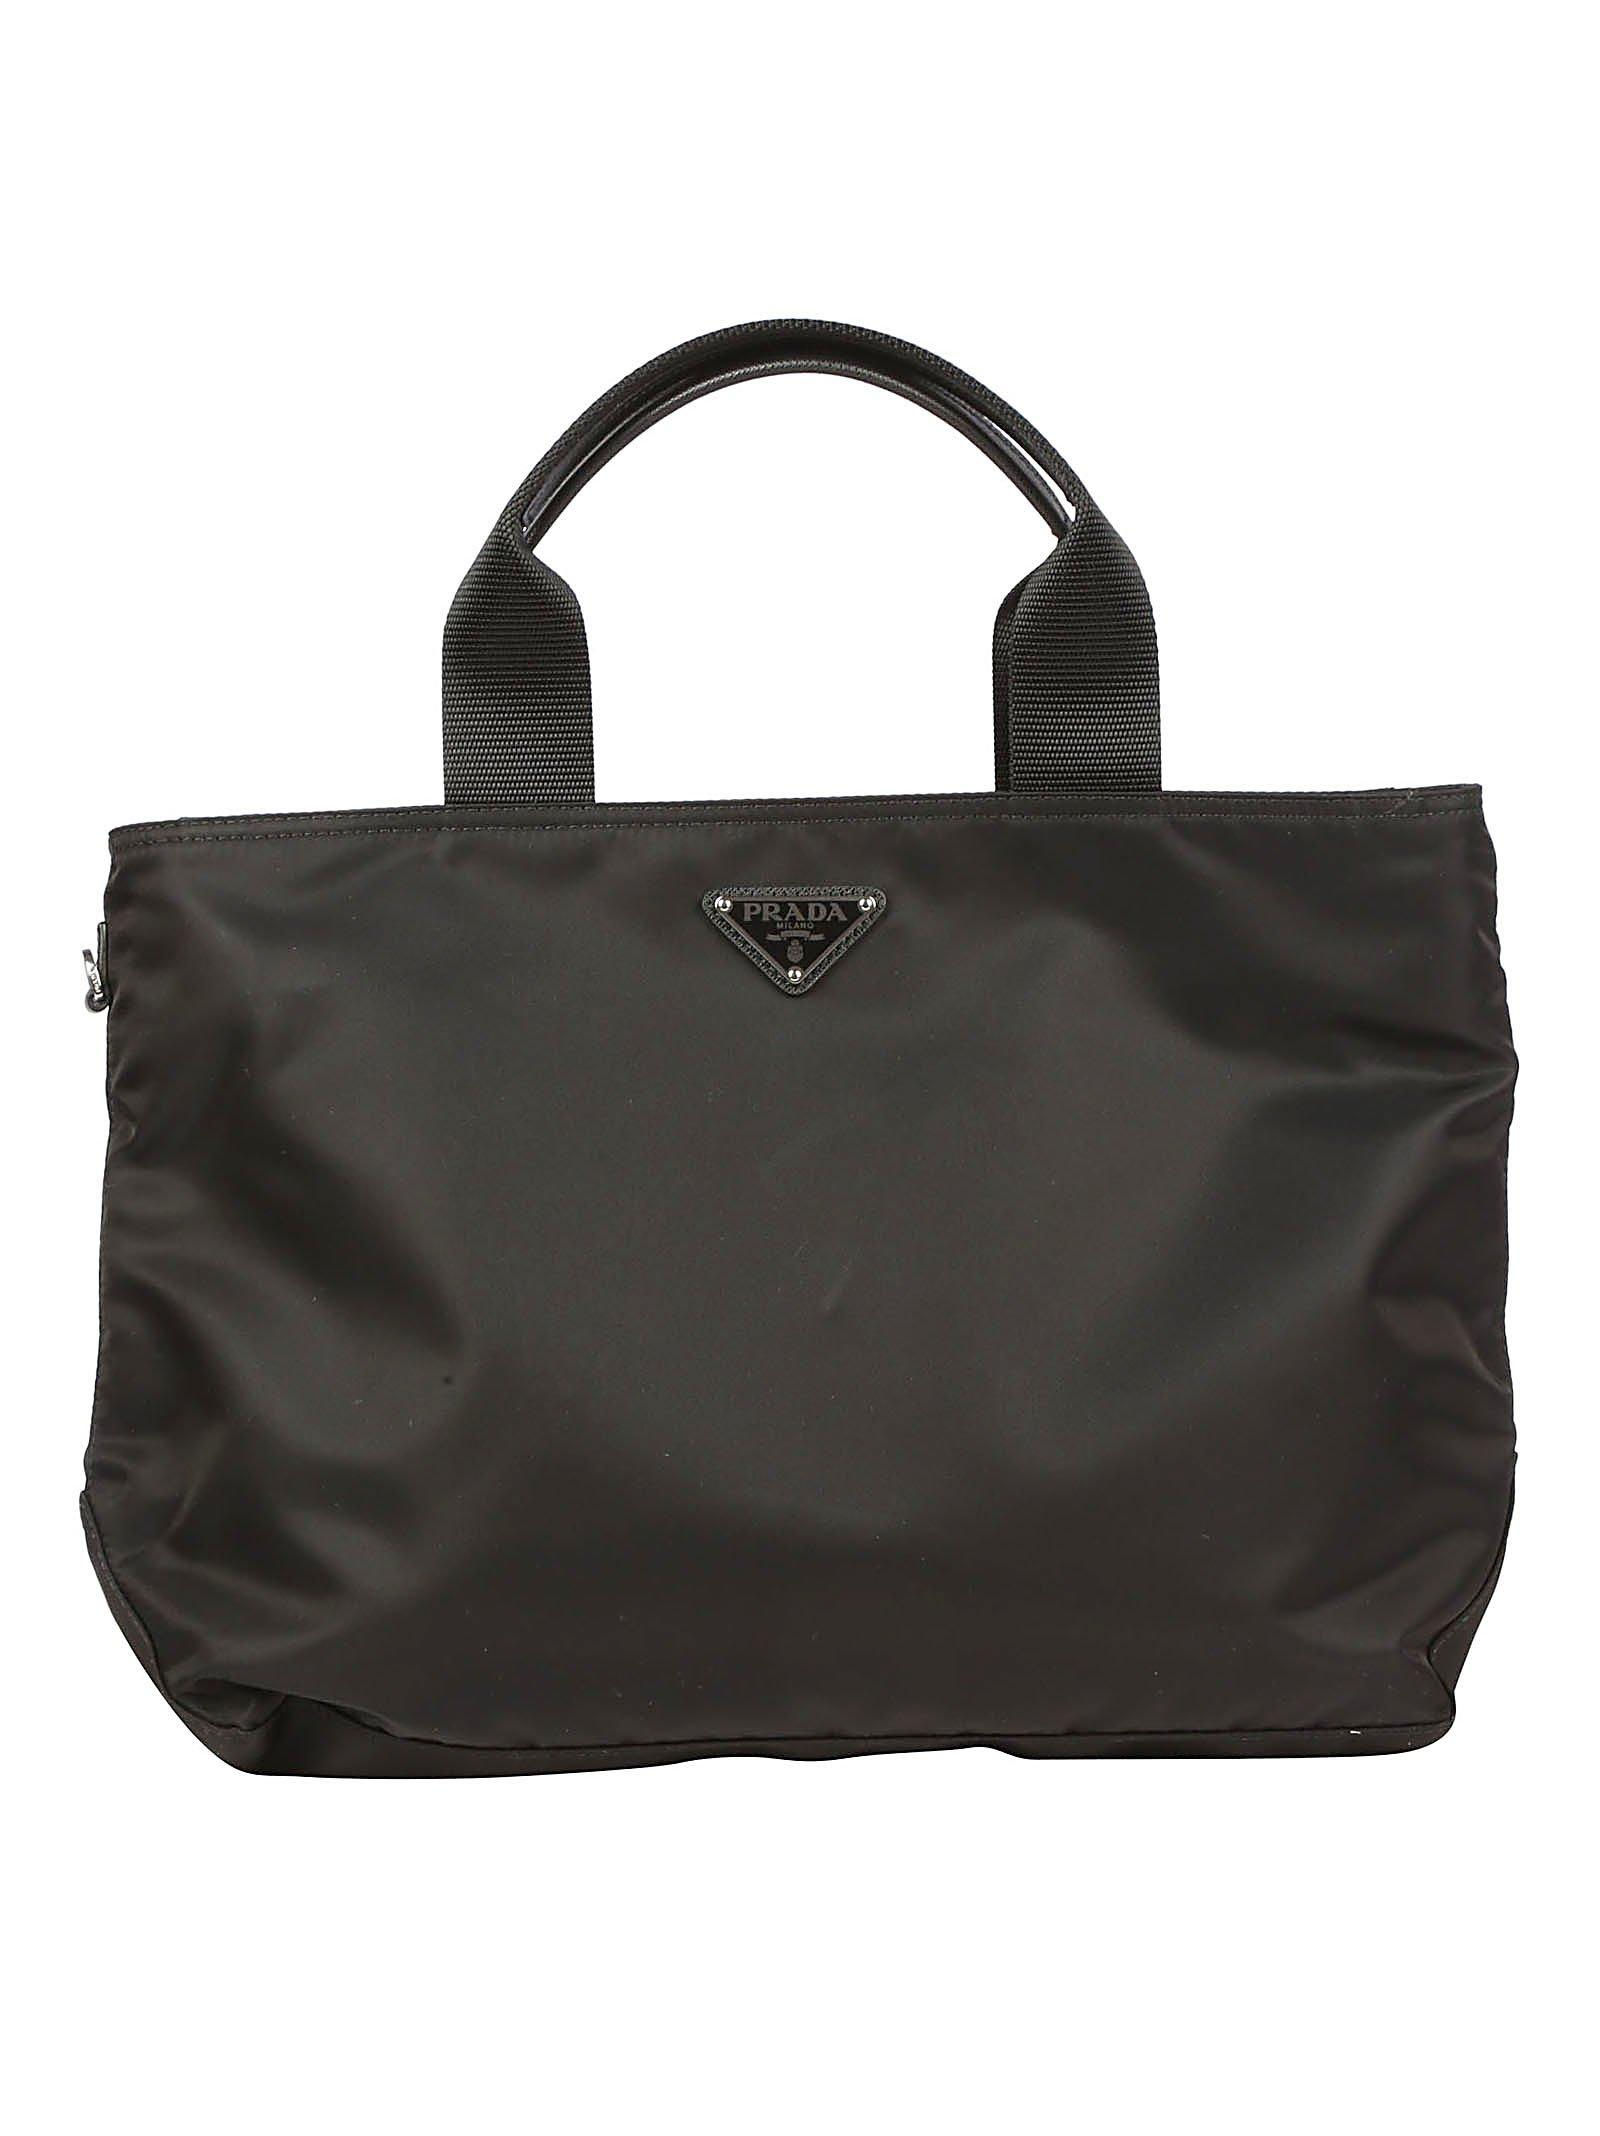 4560ee6cdc29 Prada Medium Tote Bag in Black - Lyst